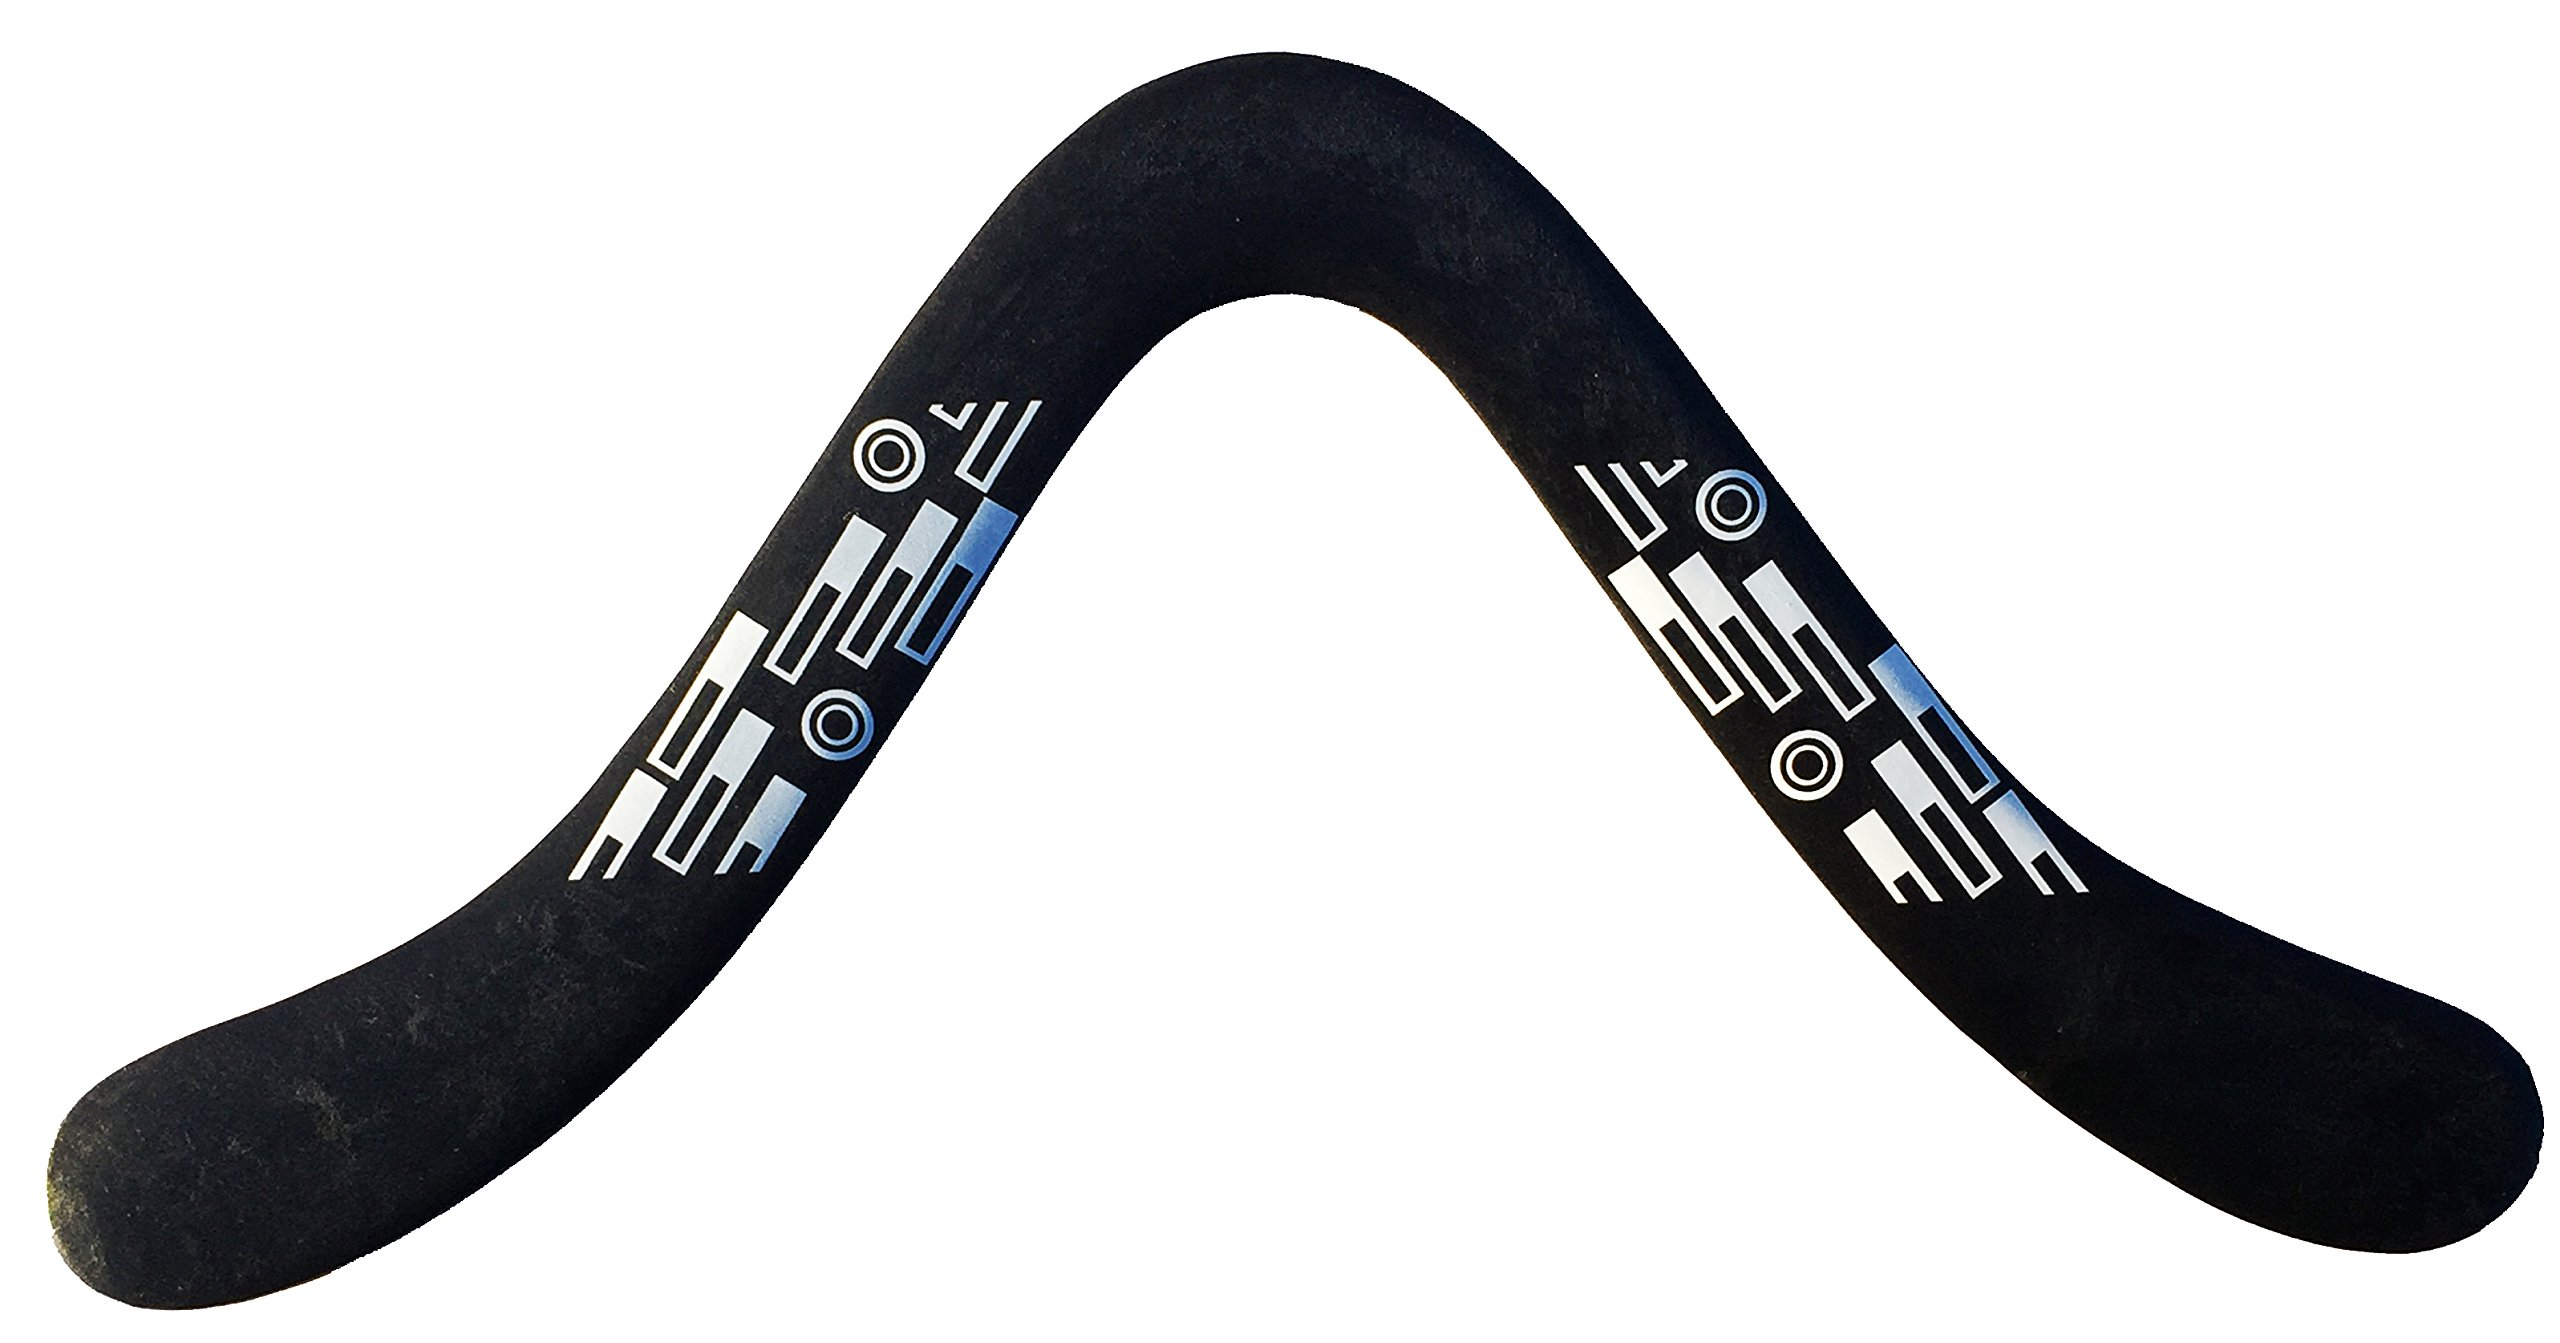 Tech Carbon Fiber Boomerang - from Colorado Boomerangs - Carbon Fibre / Composite Plastic Construction. by Boomerangs.com